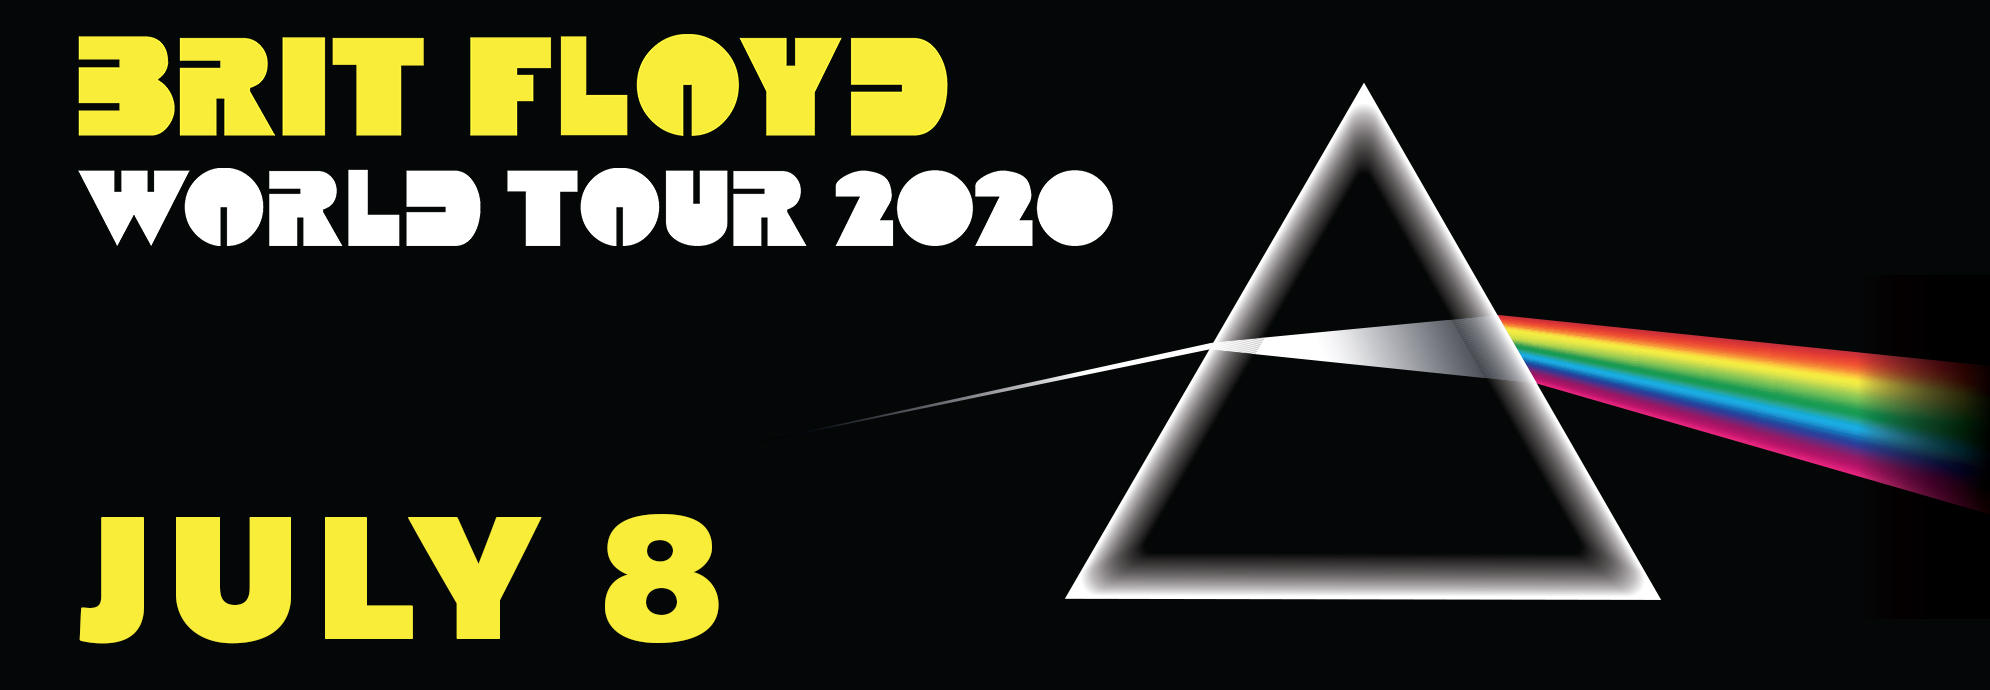 Brit Floyd World Tour 2020